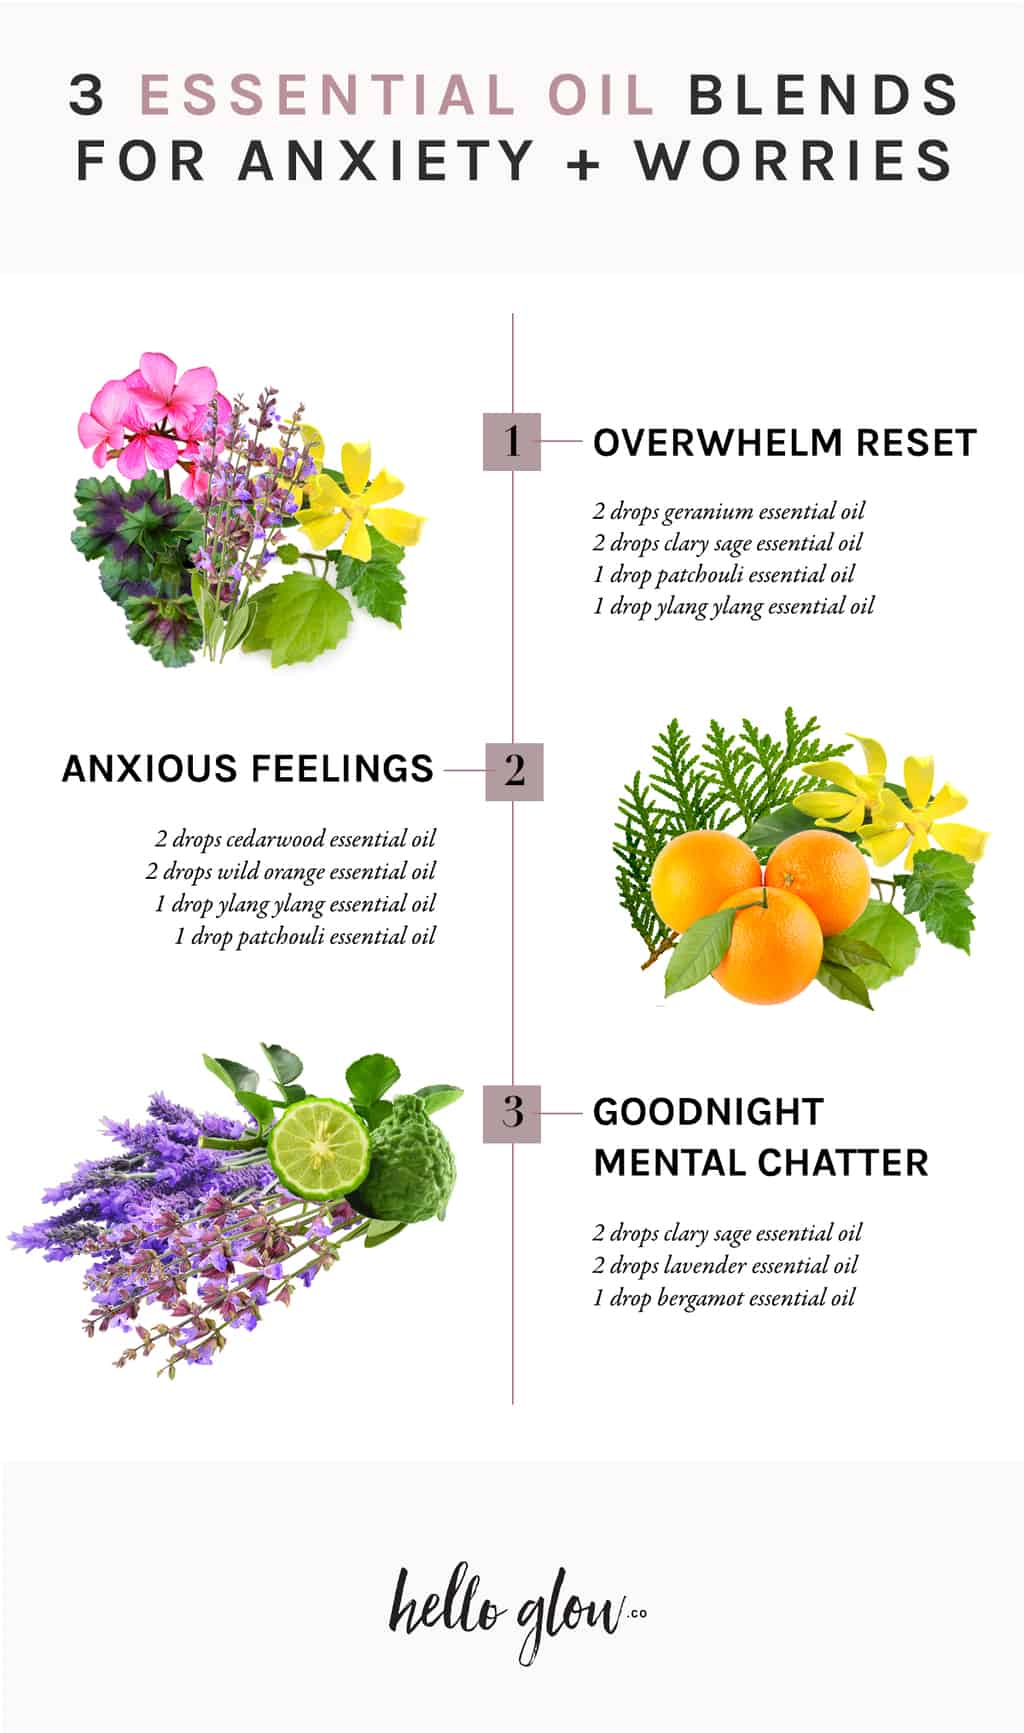 3 Essential Oil Blends for Anxiety and Worries - HelloGlow.co